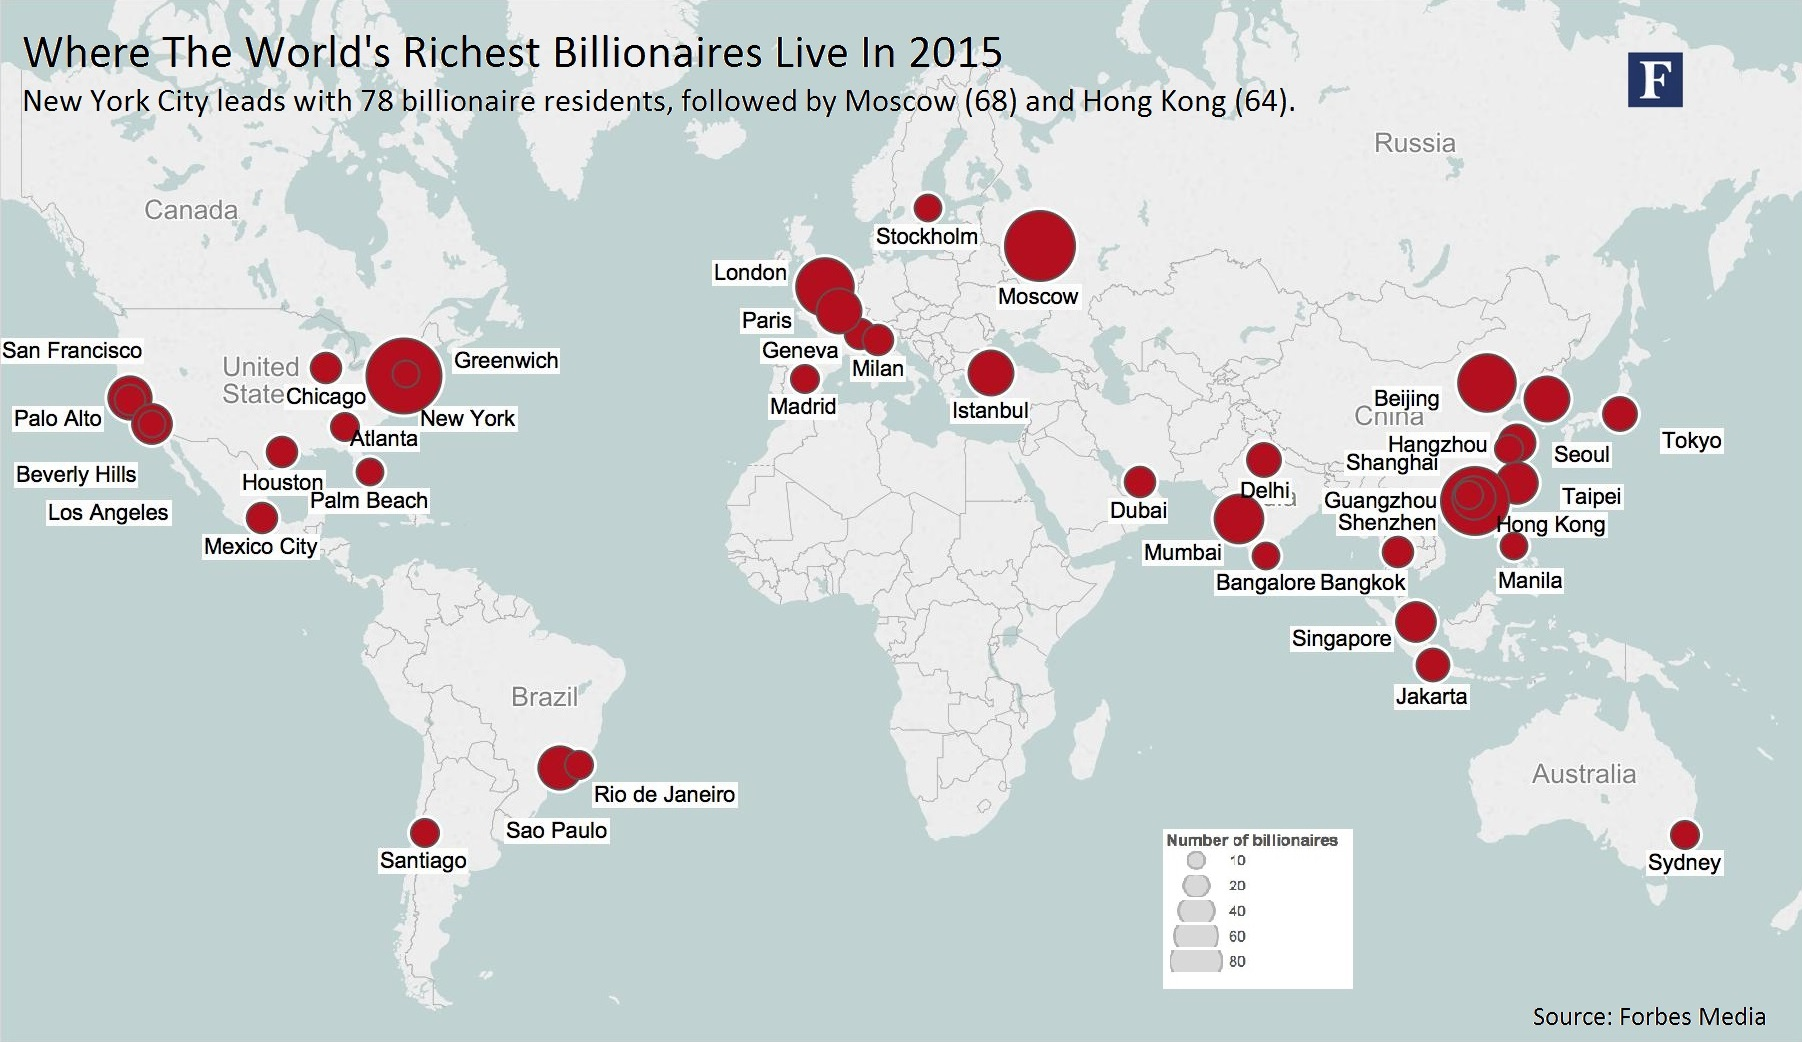 Geography Of Billionaires Mapping Nationalities And Residency - World largest cities map